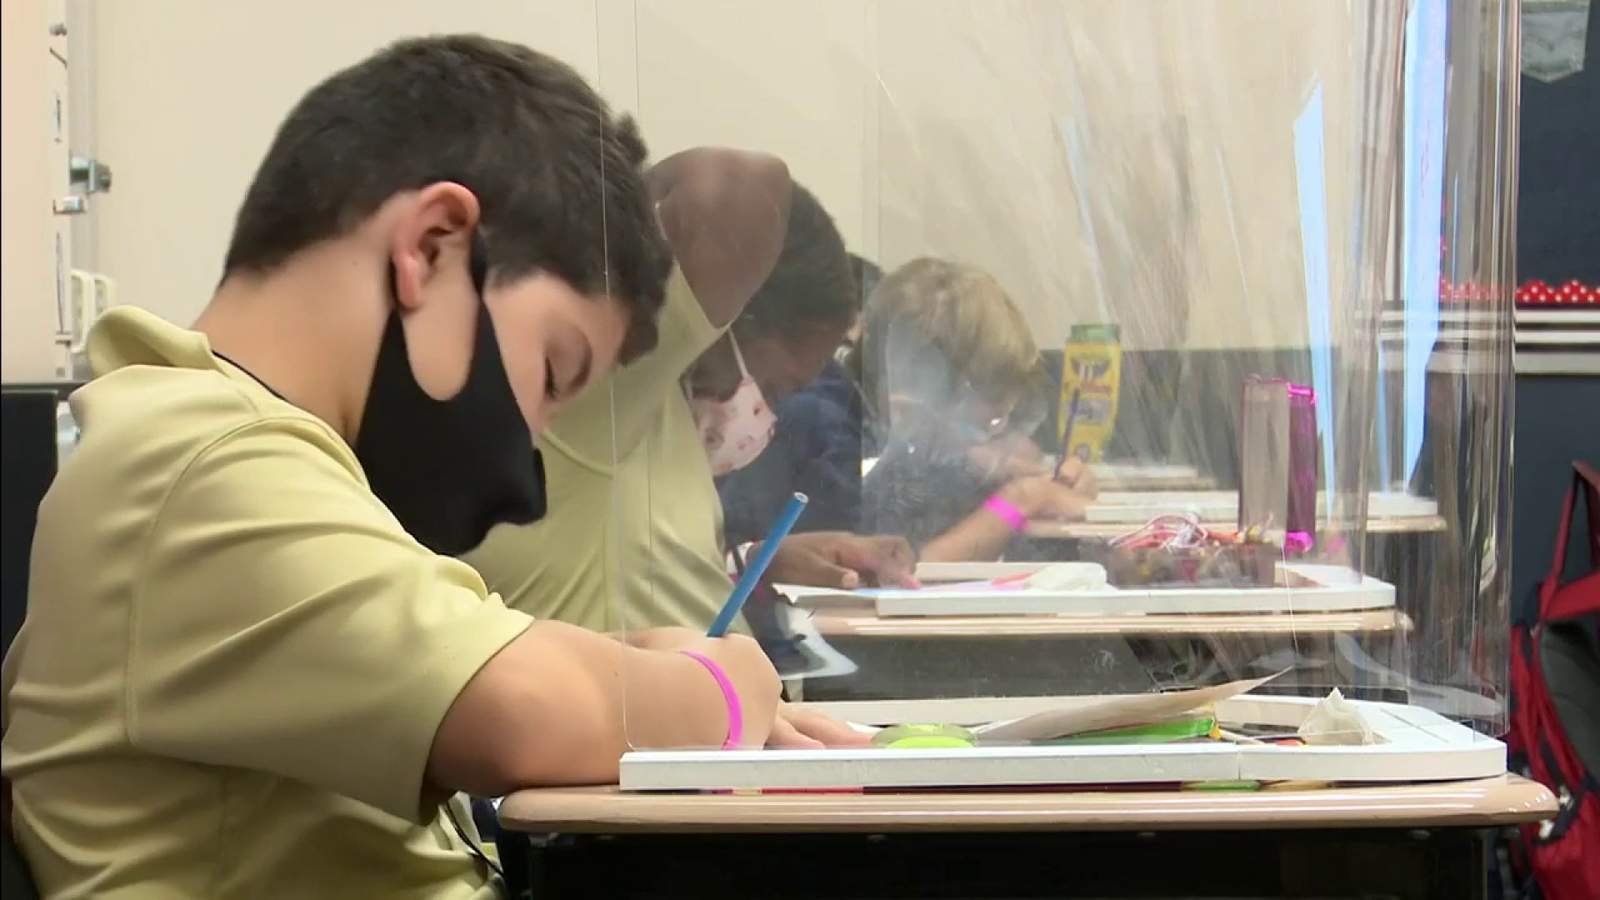 South Florida Reports Rising Covid 19 Infections In Schools As State Reports 3 662 New Cases